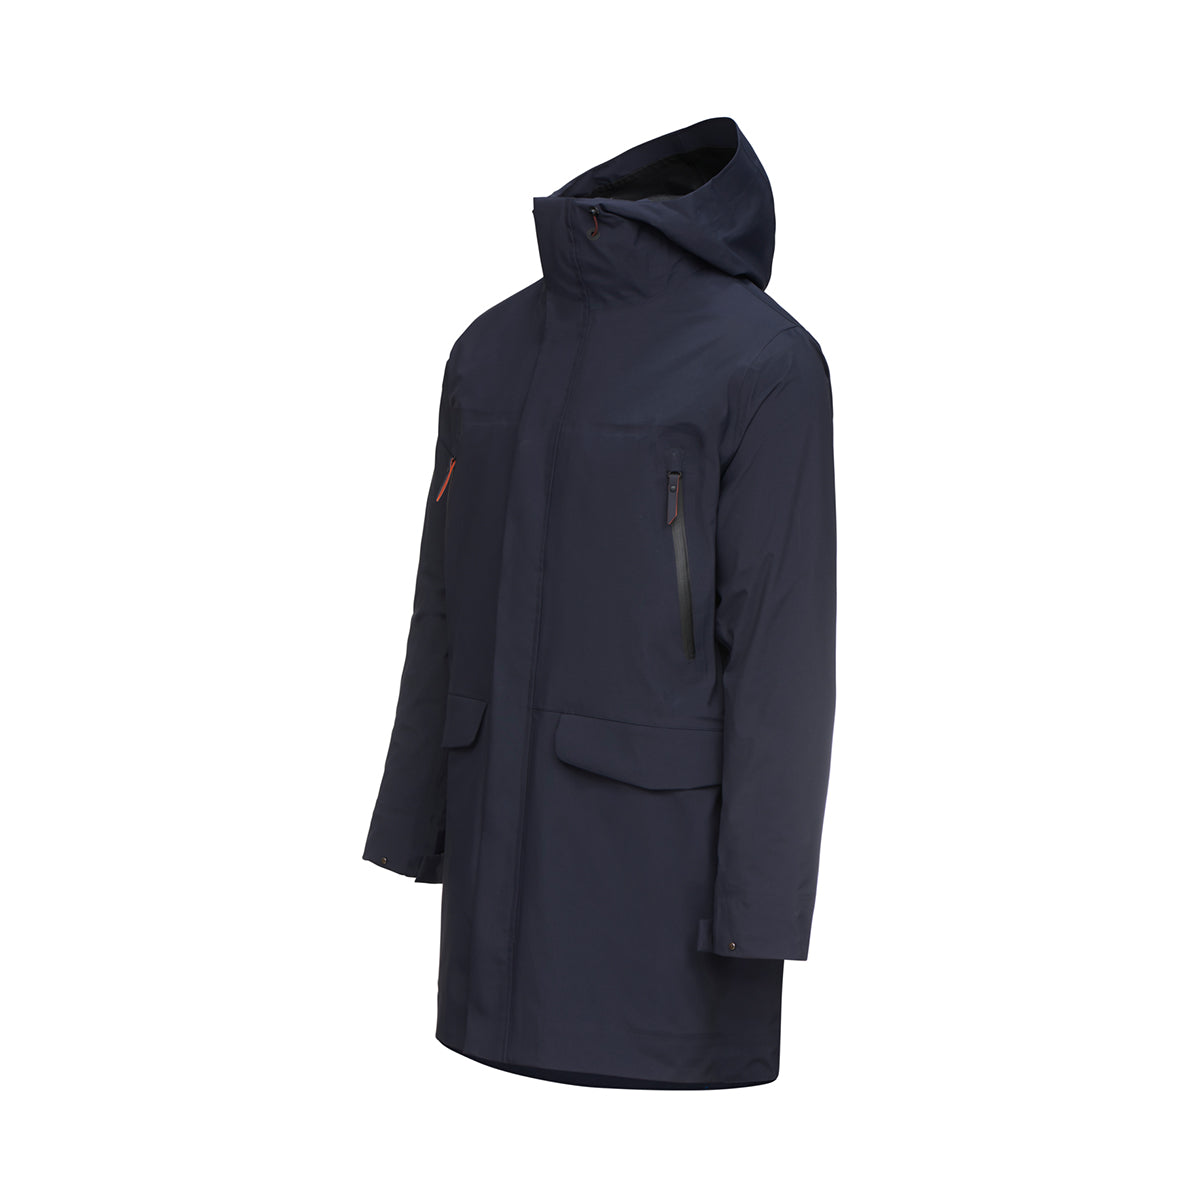 Zurich III Parka - background::white,variant::navy